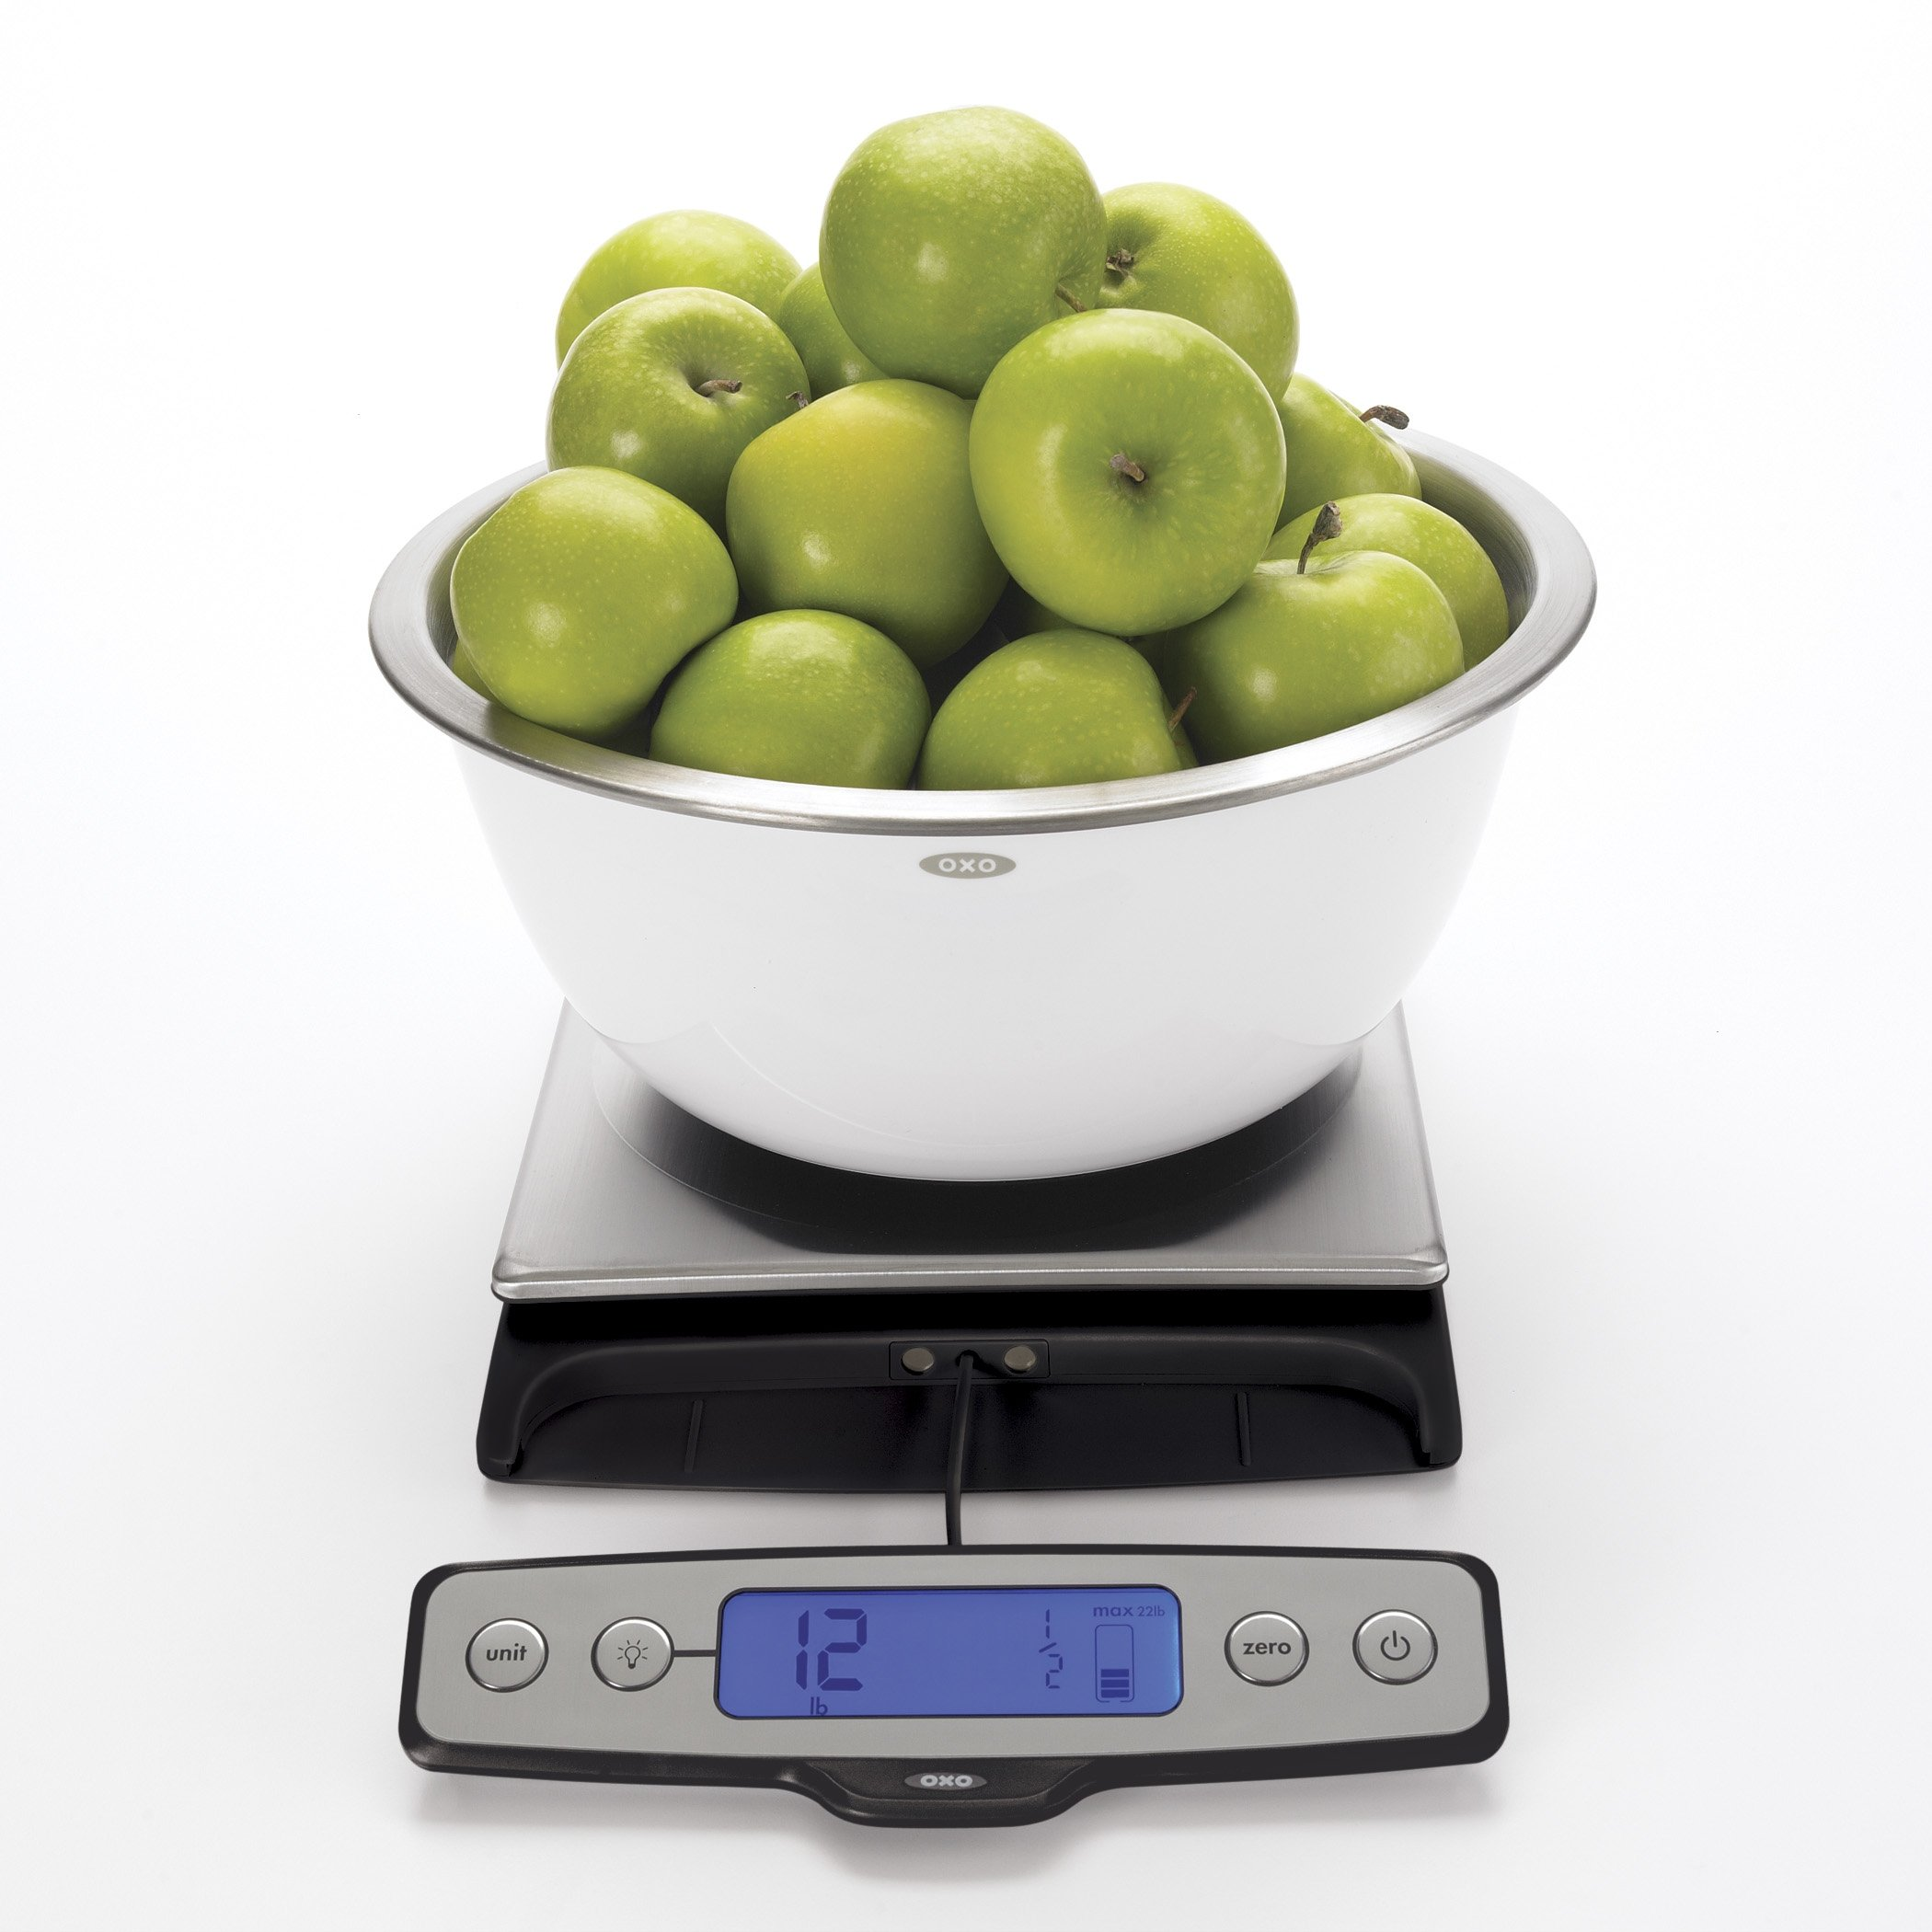 OXO Good Grips Stainless Steel Food Scale with Pull Out Display, 22-Pound